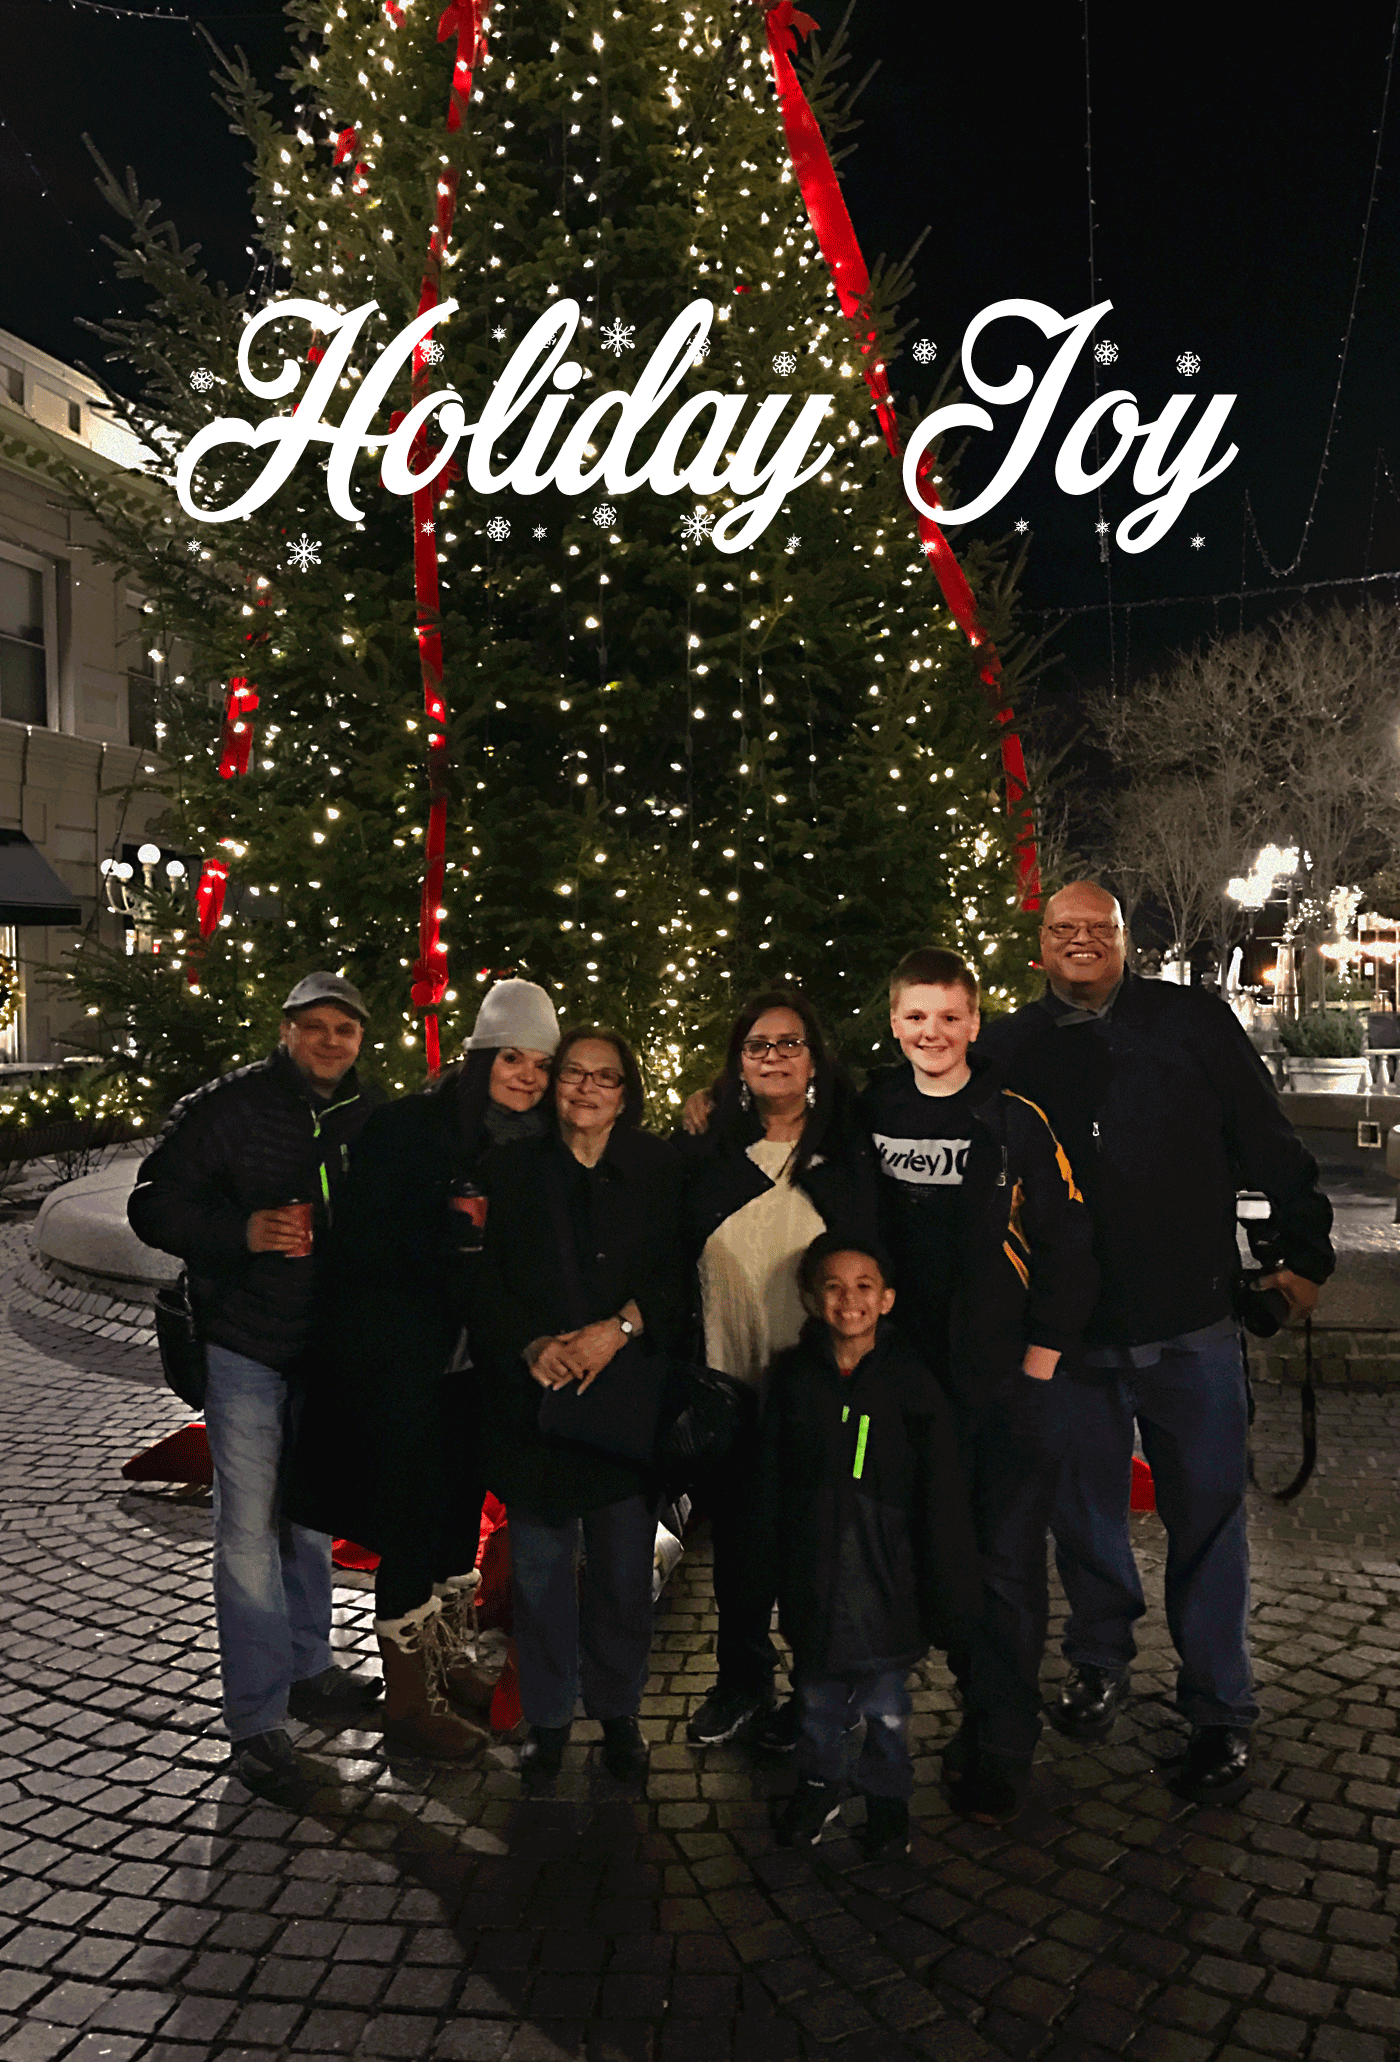 We got ready on Friday to join the family for Holiday Joy in New England. It was a quick 3 day trip to Rhode Island to see my side of the family.